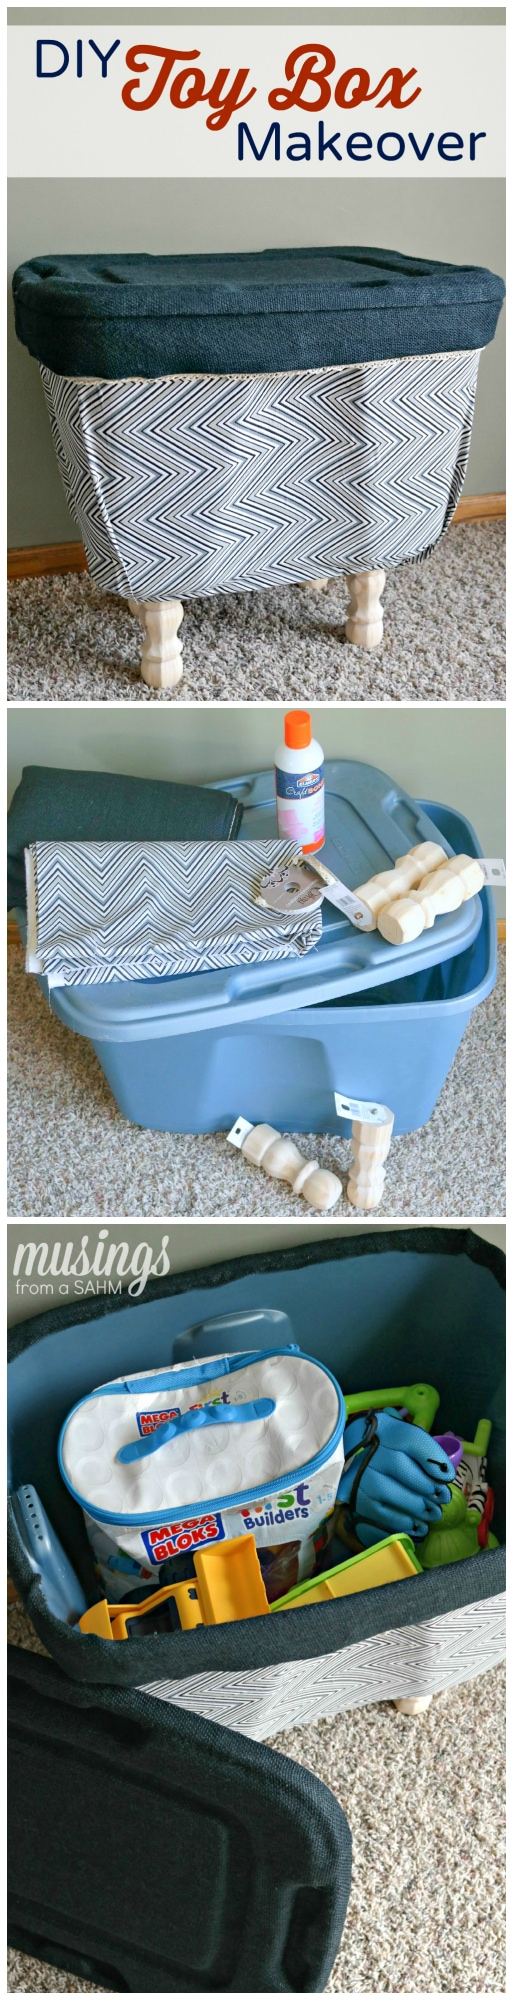 DIY Toy Box Makeover: How to turn an ugly plastic bin into a decorated toy box!